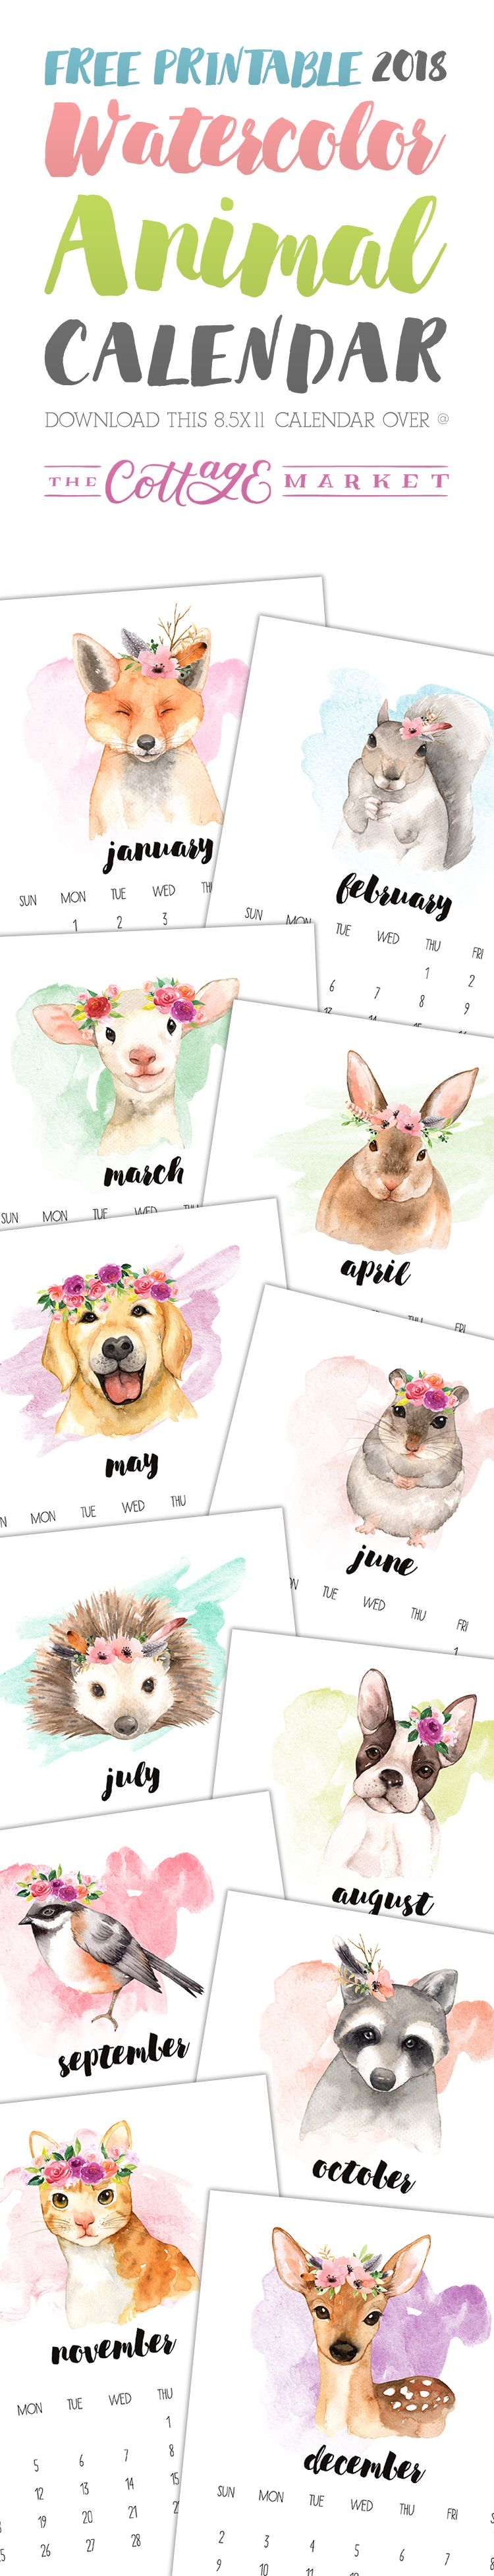 Free Printable 2018 Watercolor Animal Calendar - The Cottage Market